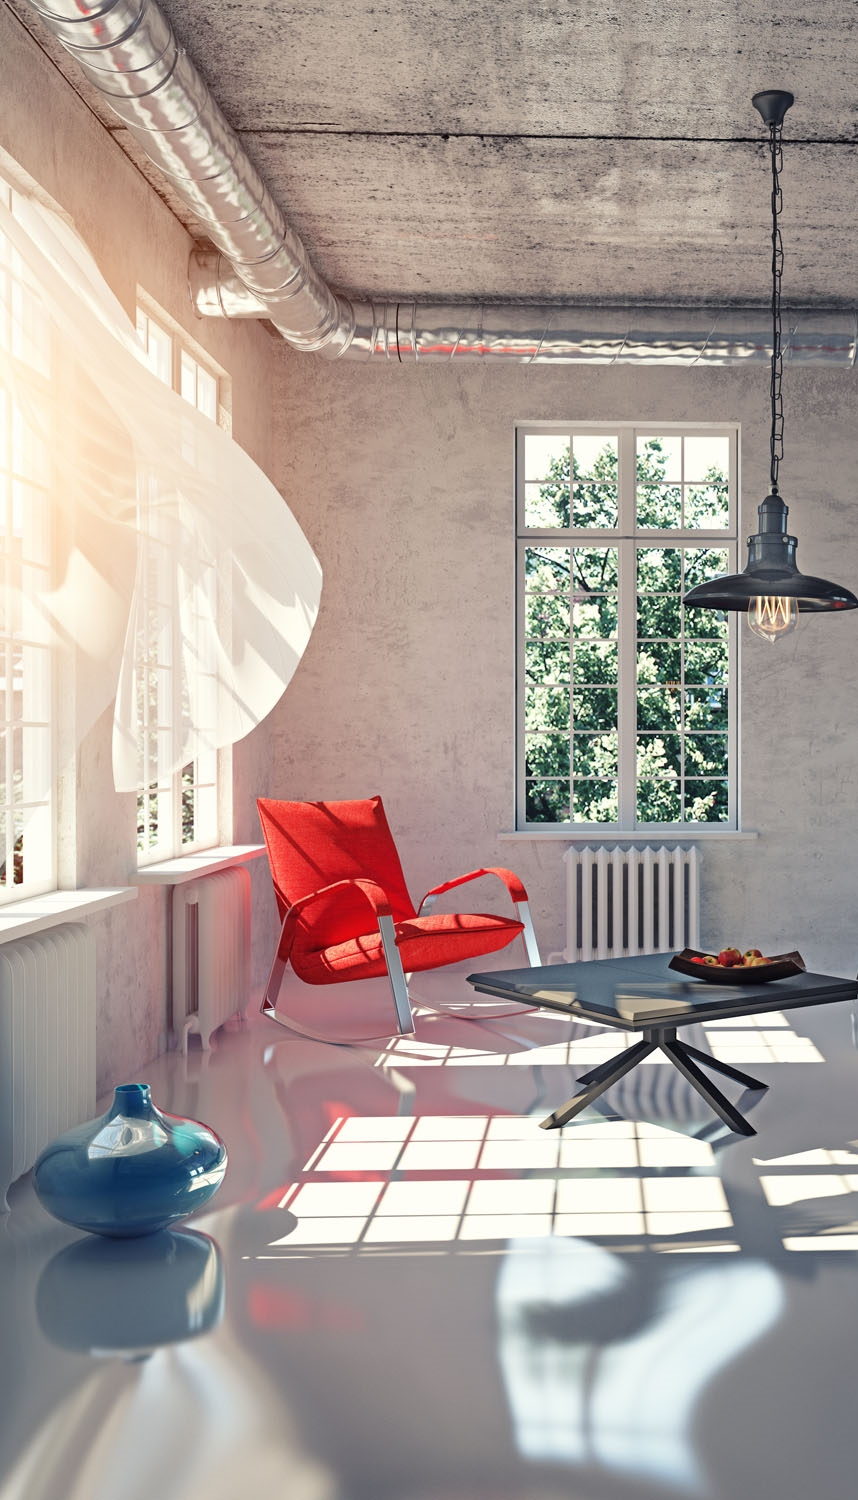 rustic-modern-airy-loft-with-vivid-chairs-high-ceilings-good-window-light-75837847-1500px.jpg